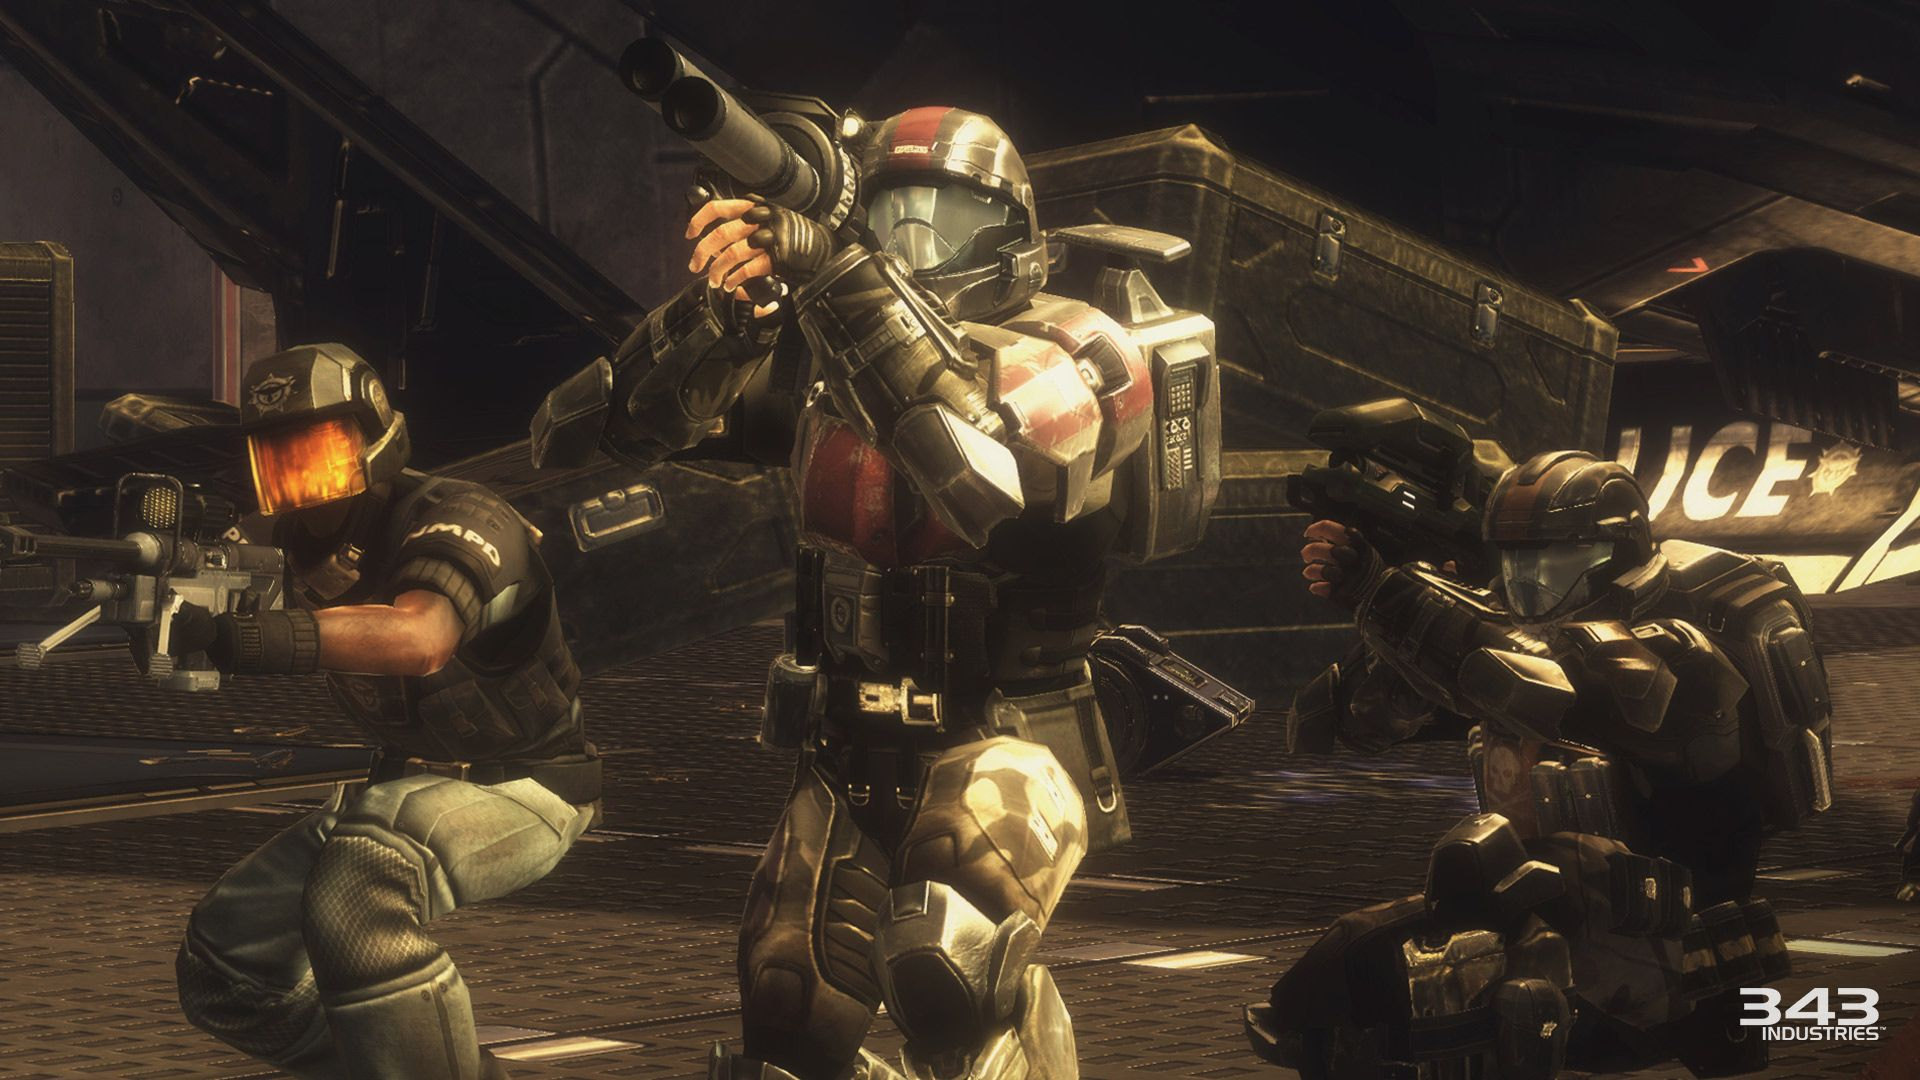 Halo 3 Odst Hits Halo Collection This Week